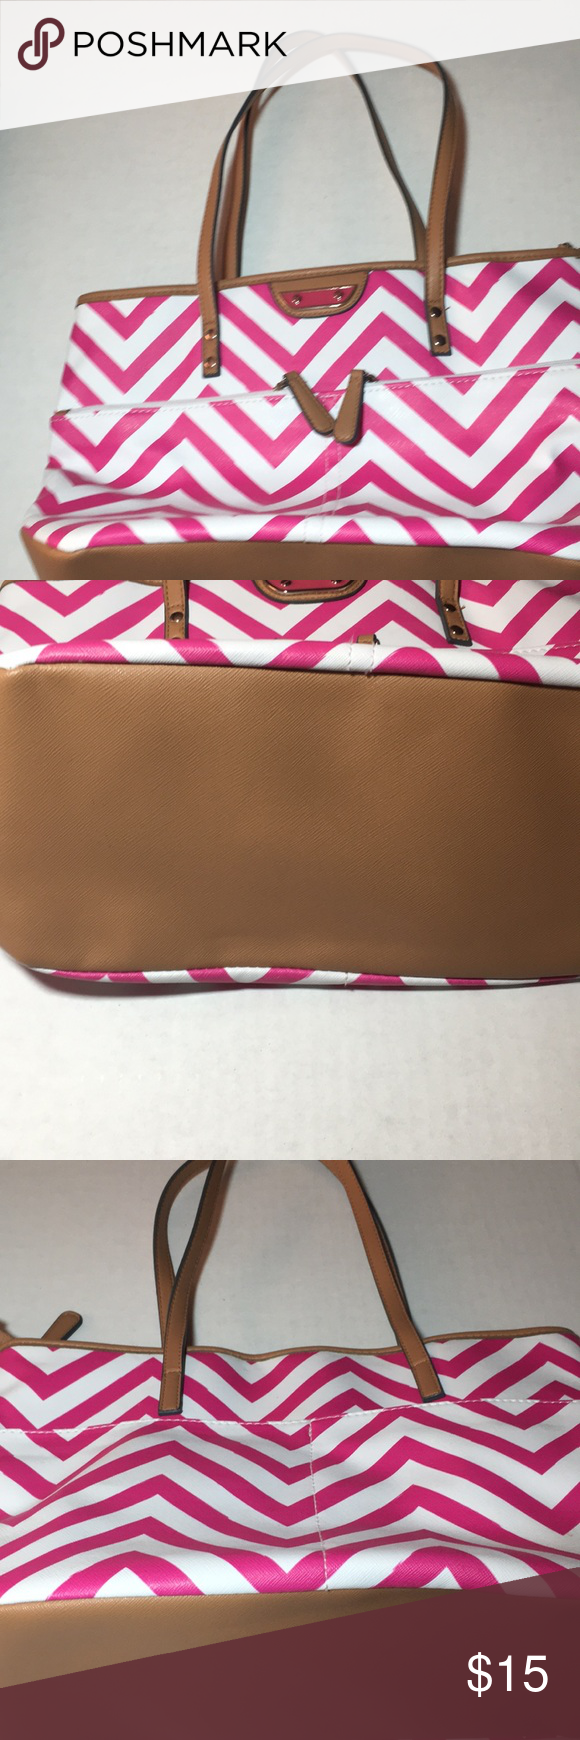 NWOT Stylish Handbag